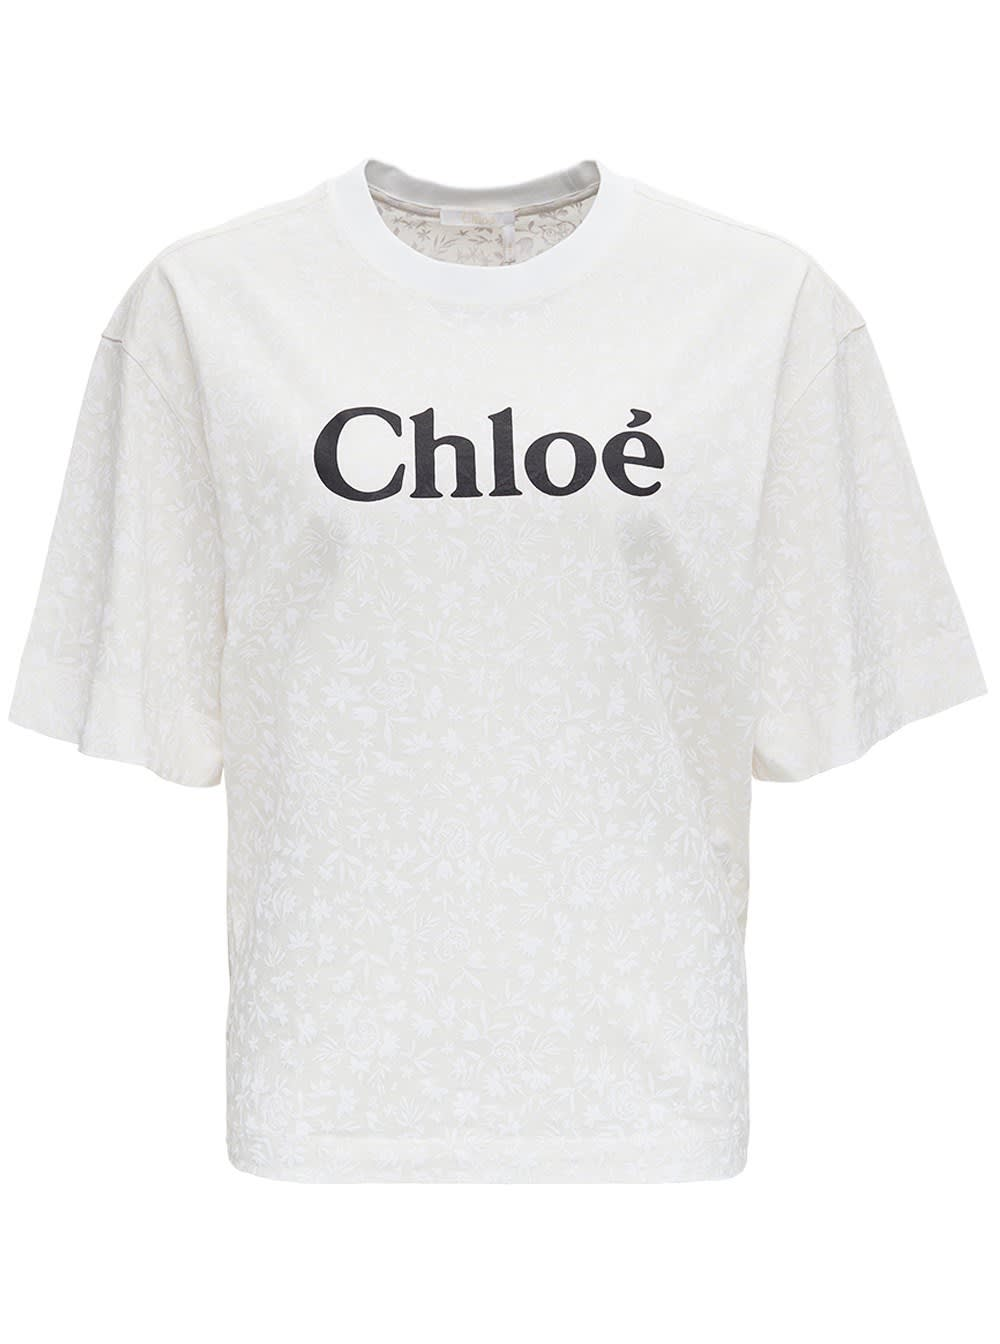 Chloé JERSEY T-SHIRT WITH LOGO PRINT